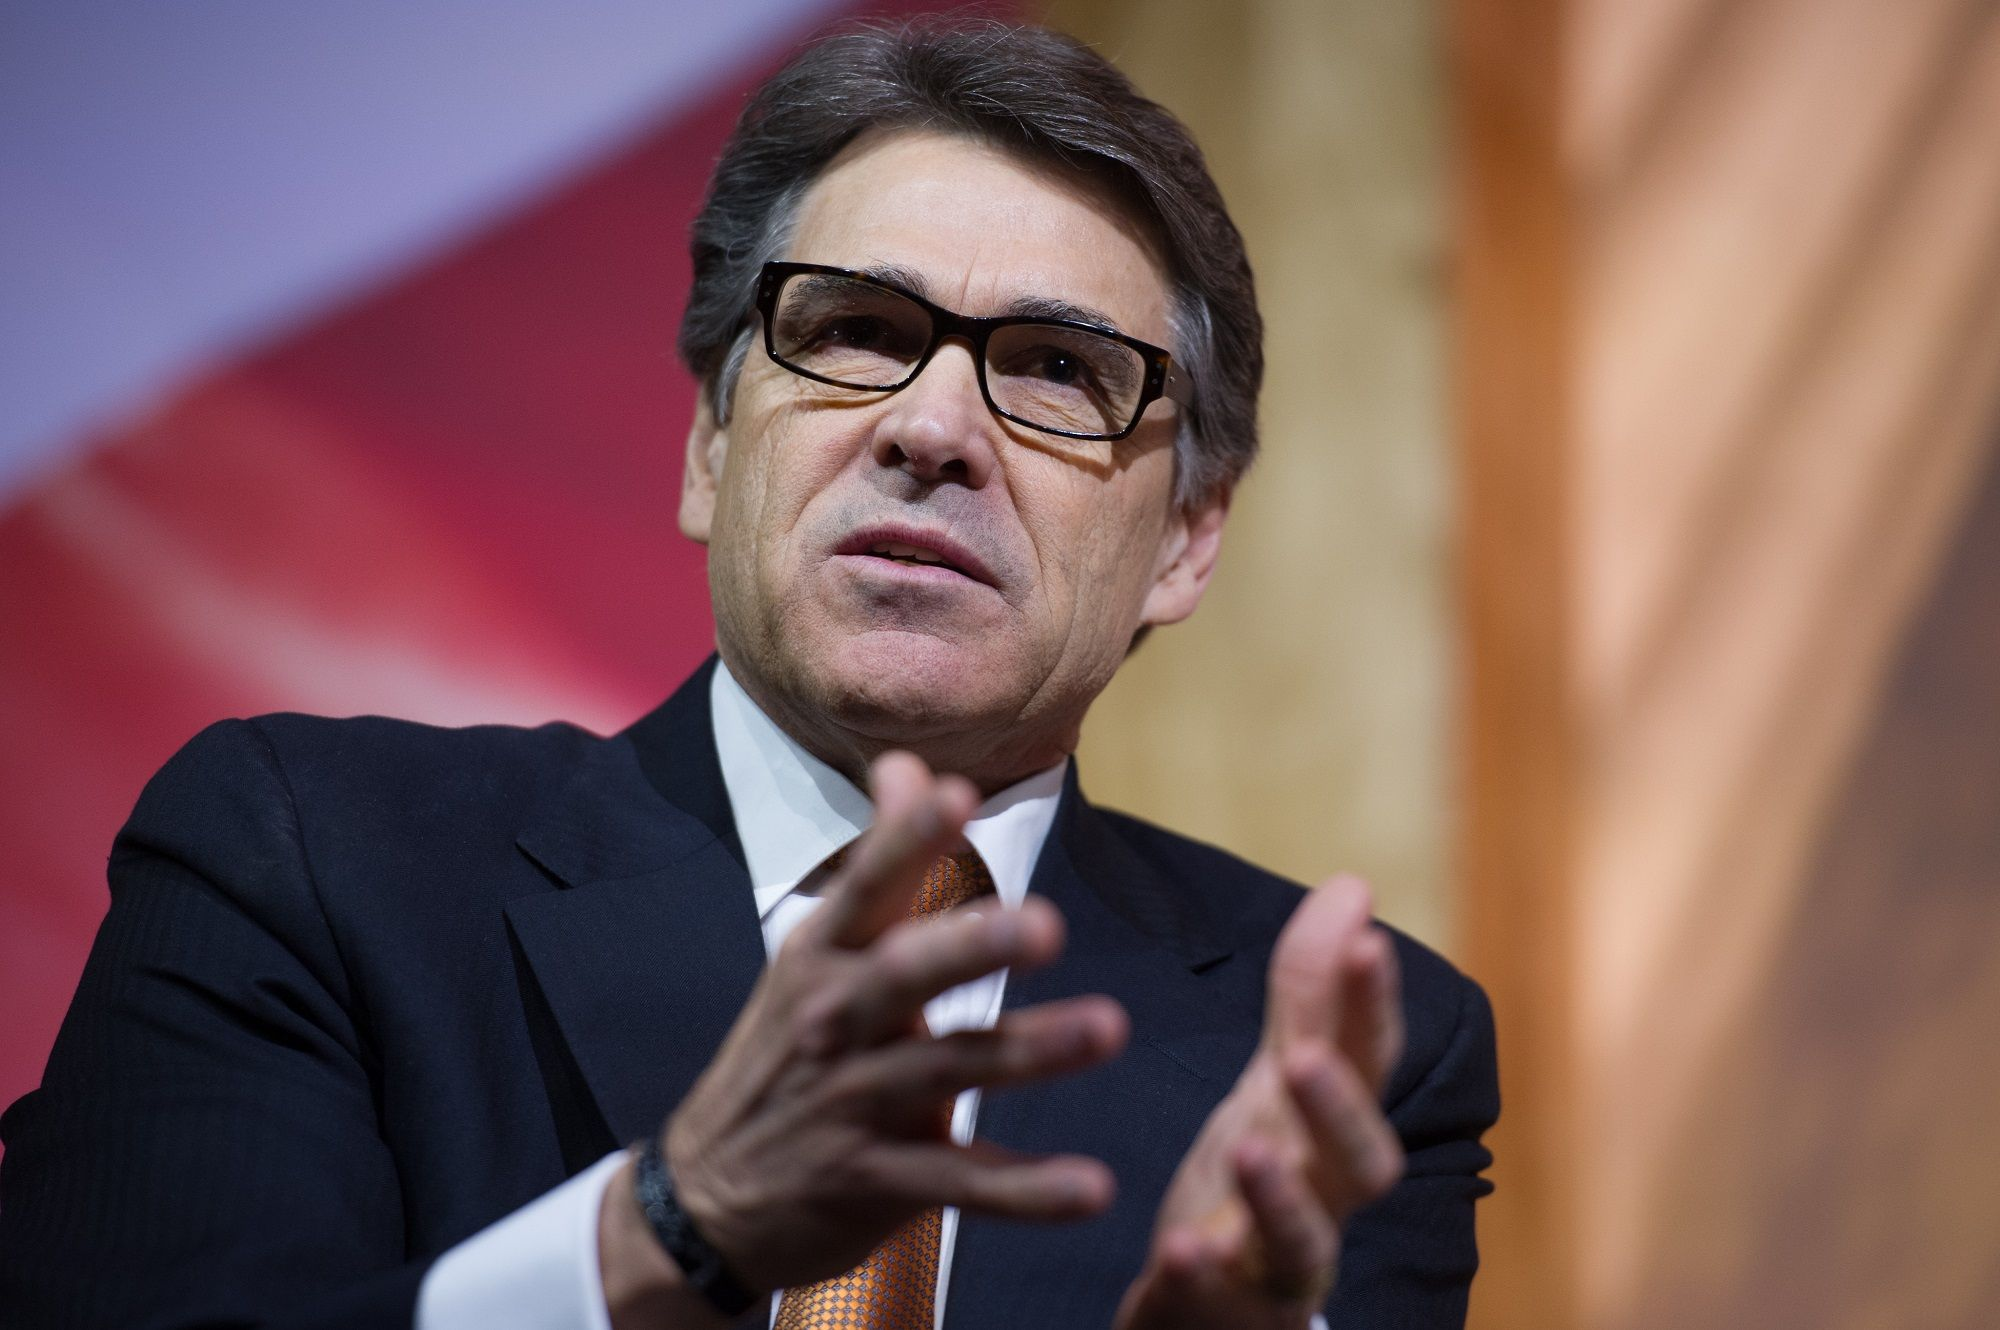 9. Rick Perry on Homosexuality